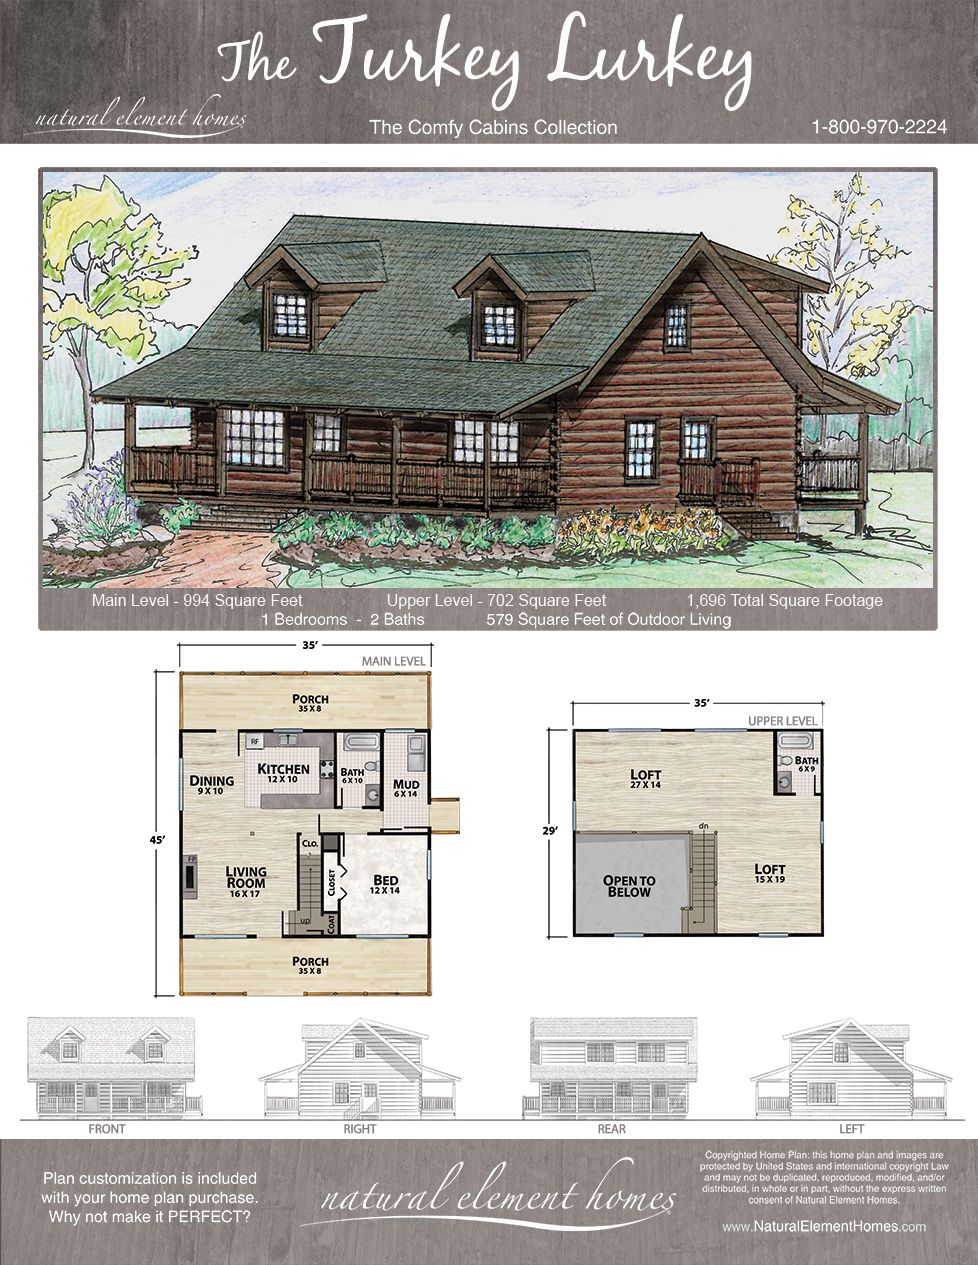 Turkey Lurkey Plan Comfy Cabins Natural Element Homes Building Plans House Log Cabin Floor Plans Log Home Floor Plans